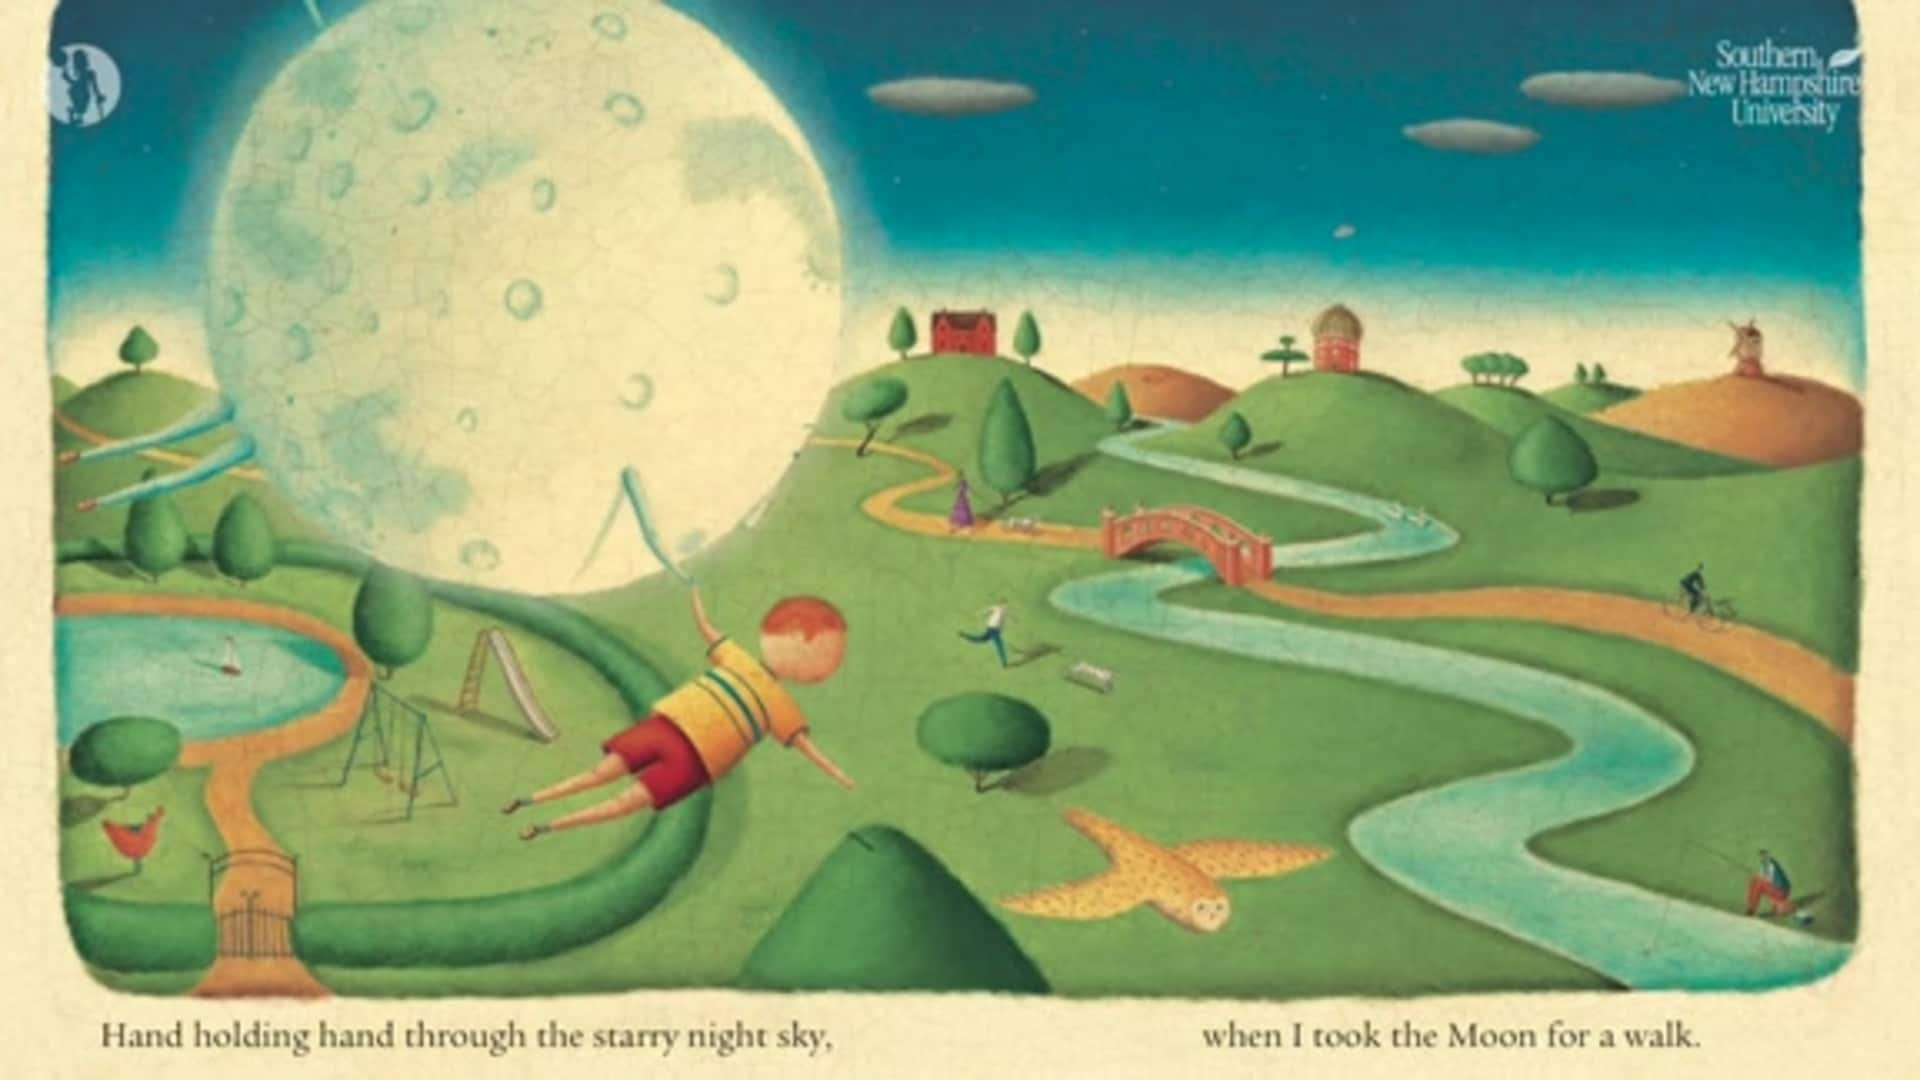 Virtual Read to Achieve - I Took The Moon For A Walk